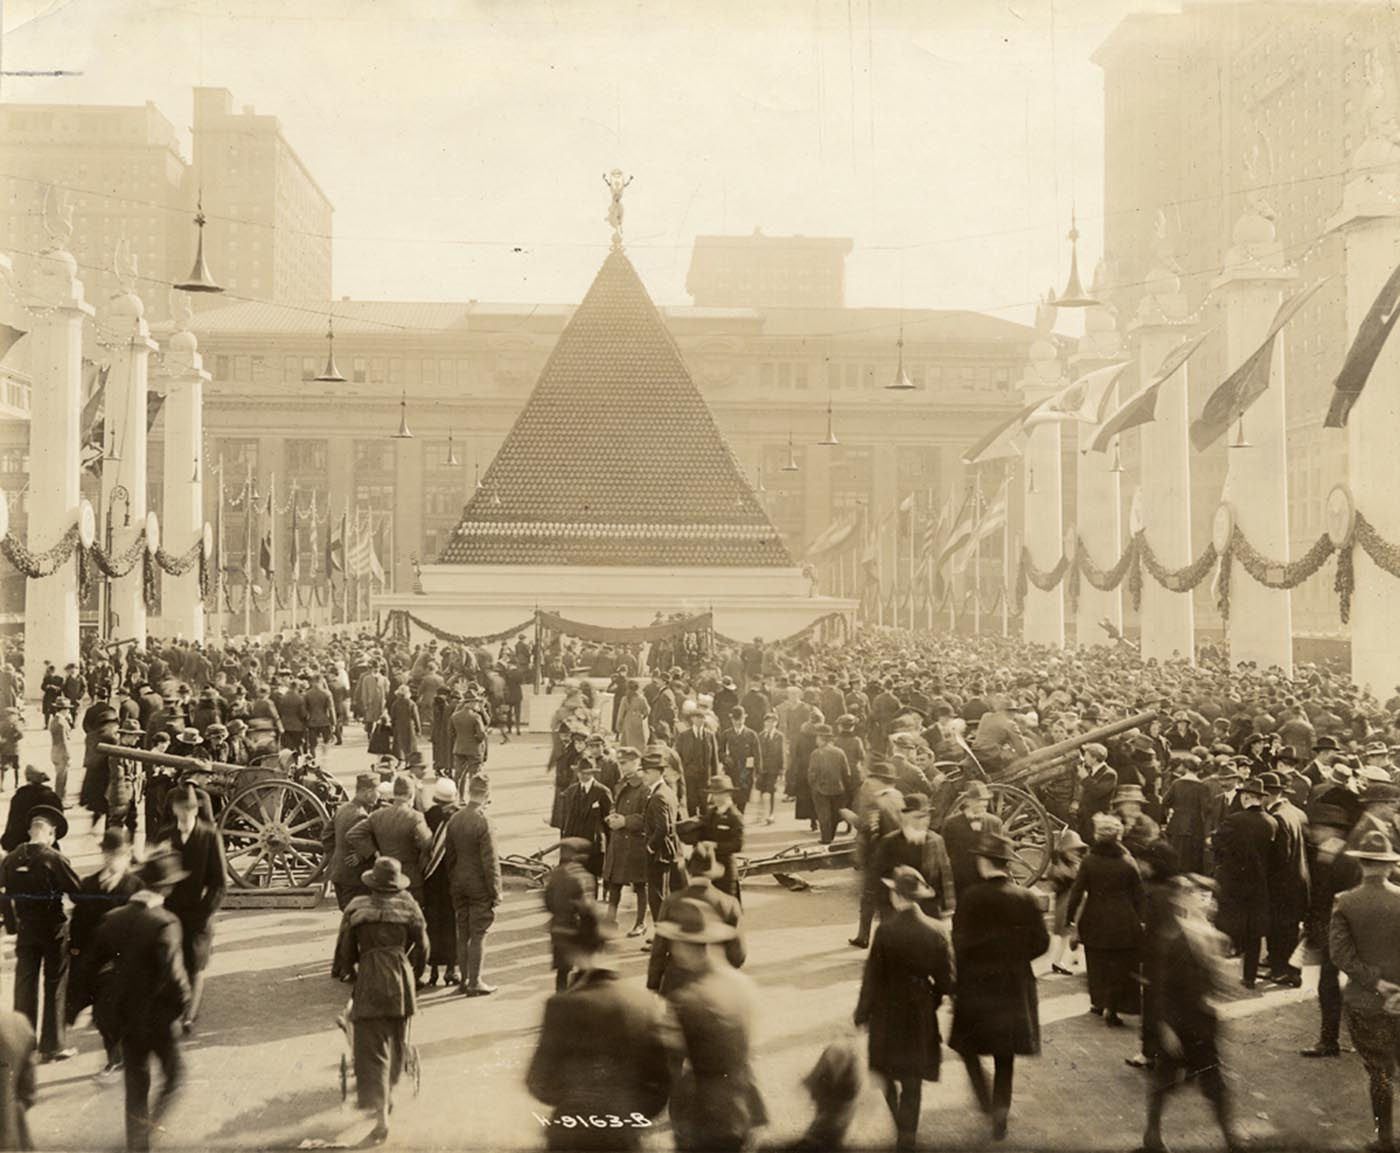 Pyramid of WWI German helmets at Grand Central, 1919.